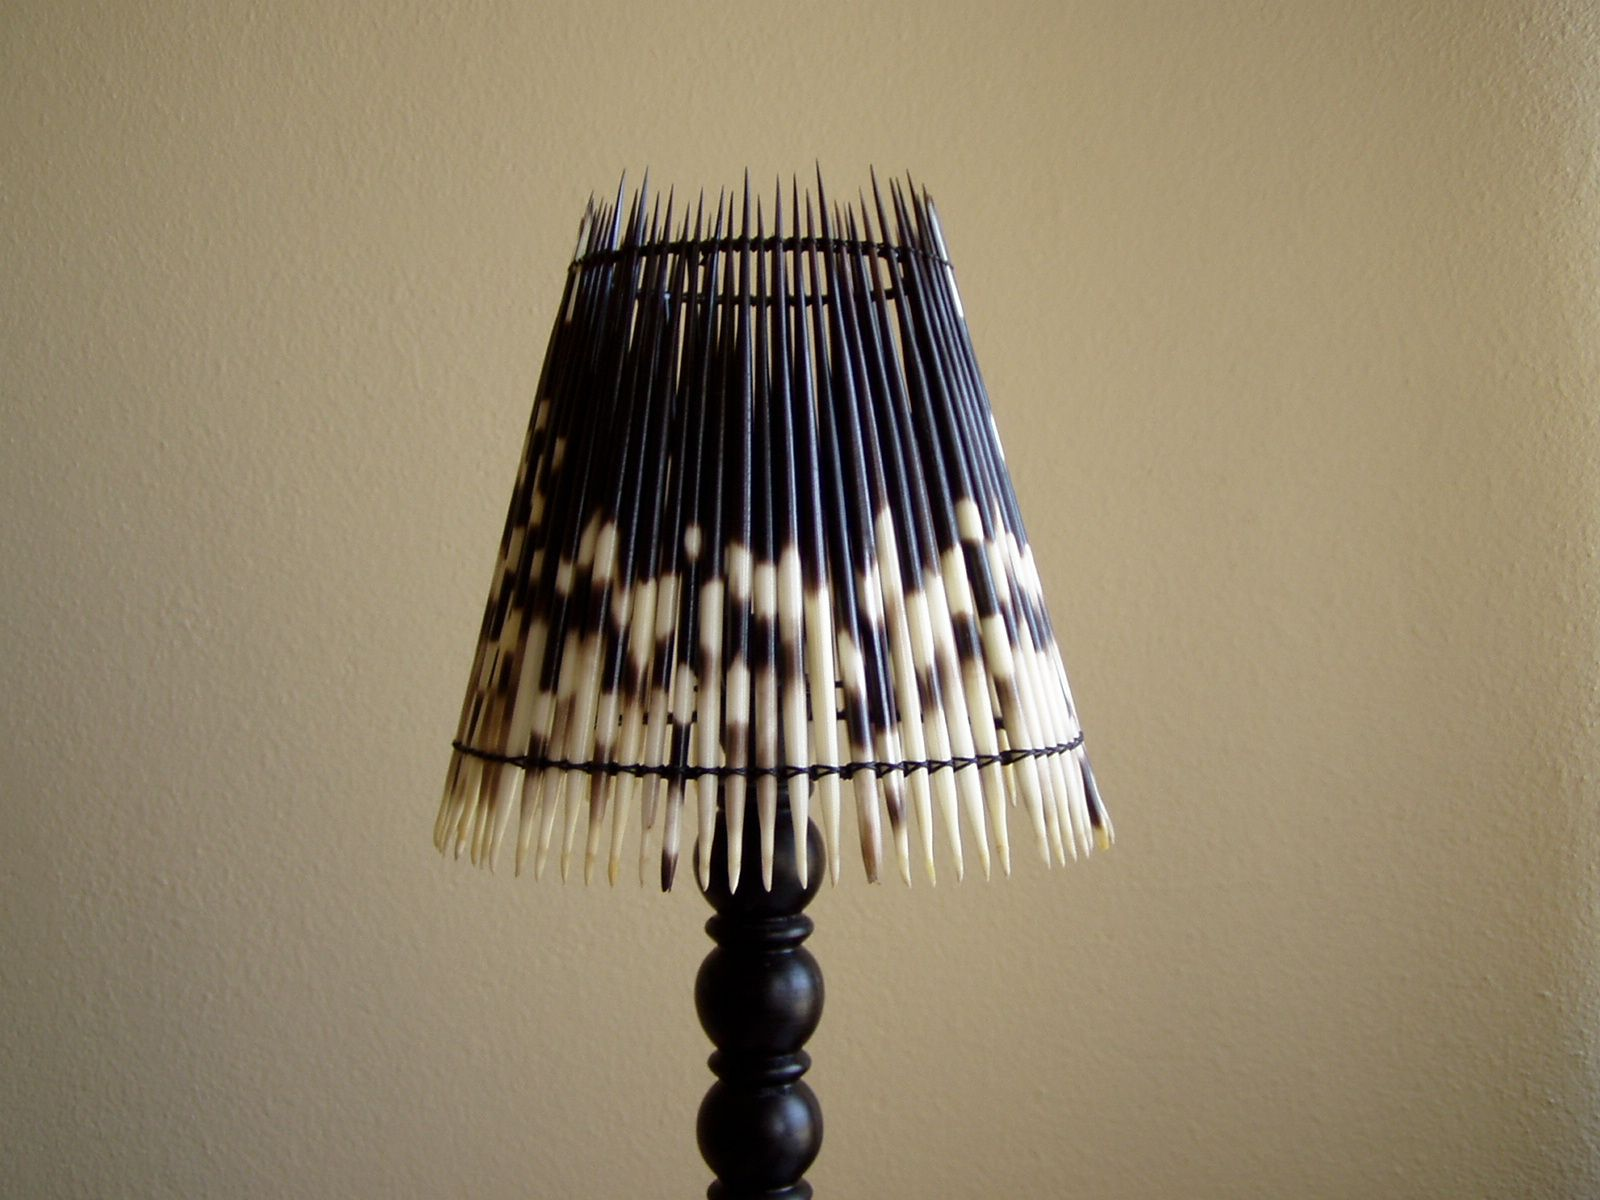 Lamps Porcupine Quill Lamp Shade Available Online Or